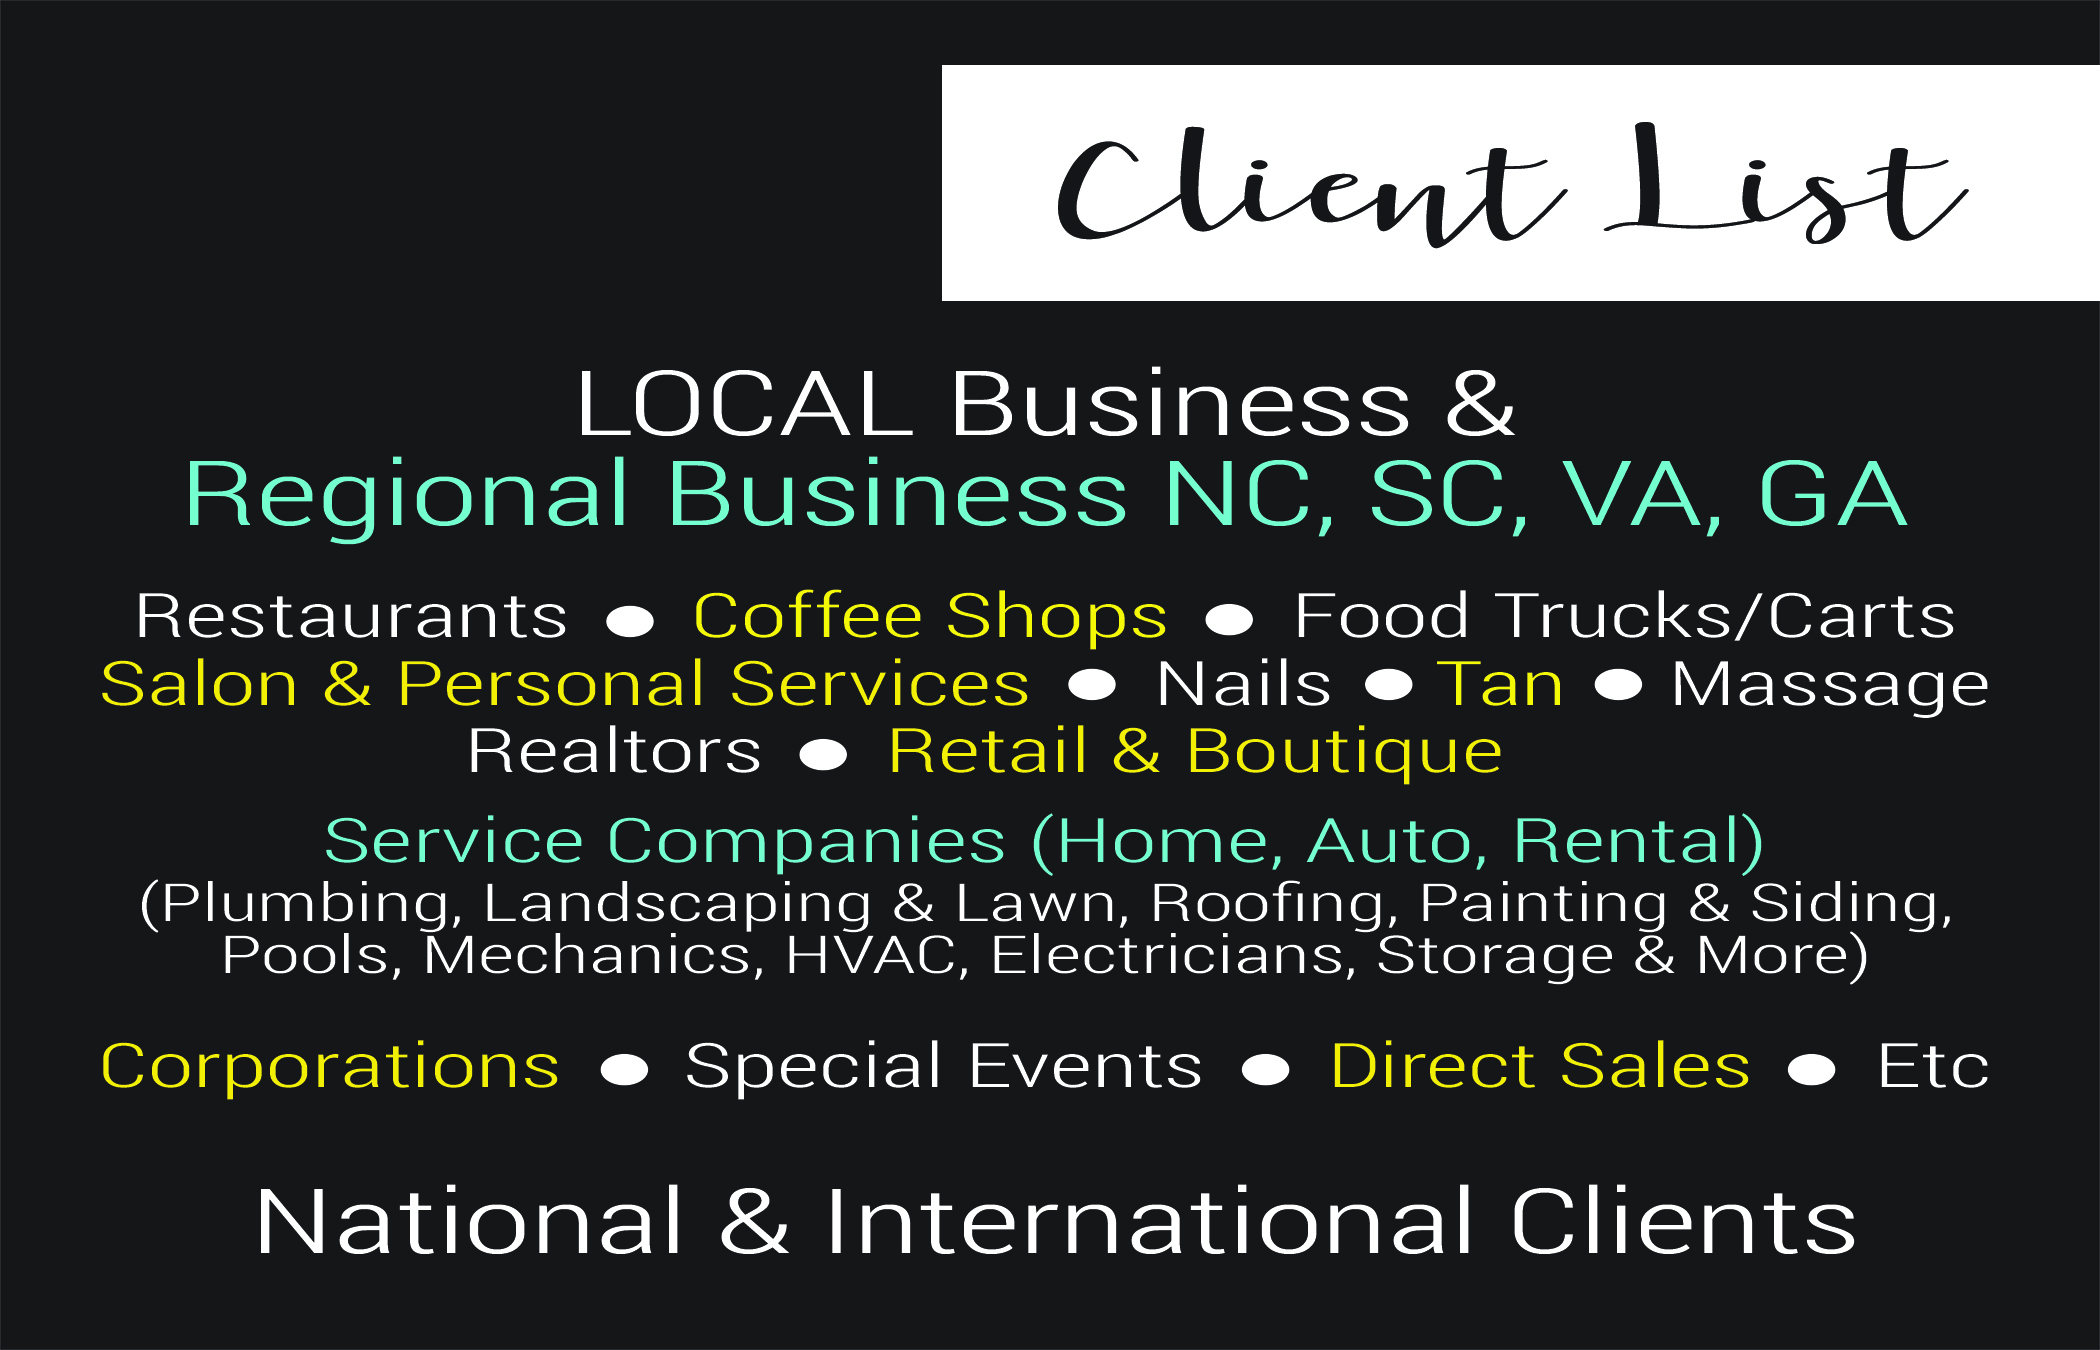 BlackWhite Creates Tools For Success! Cyndie Has Worked With Large Corporations, Small Businesses, Solopreneurs, and Sales Ambassadors - Find Out How BlackWhite Business Helper Can Assist You in 2019!